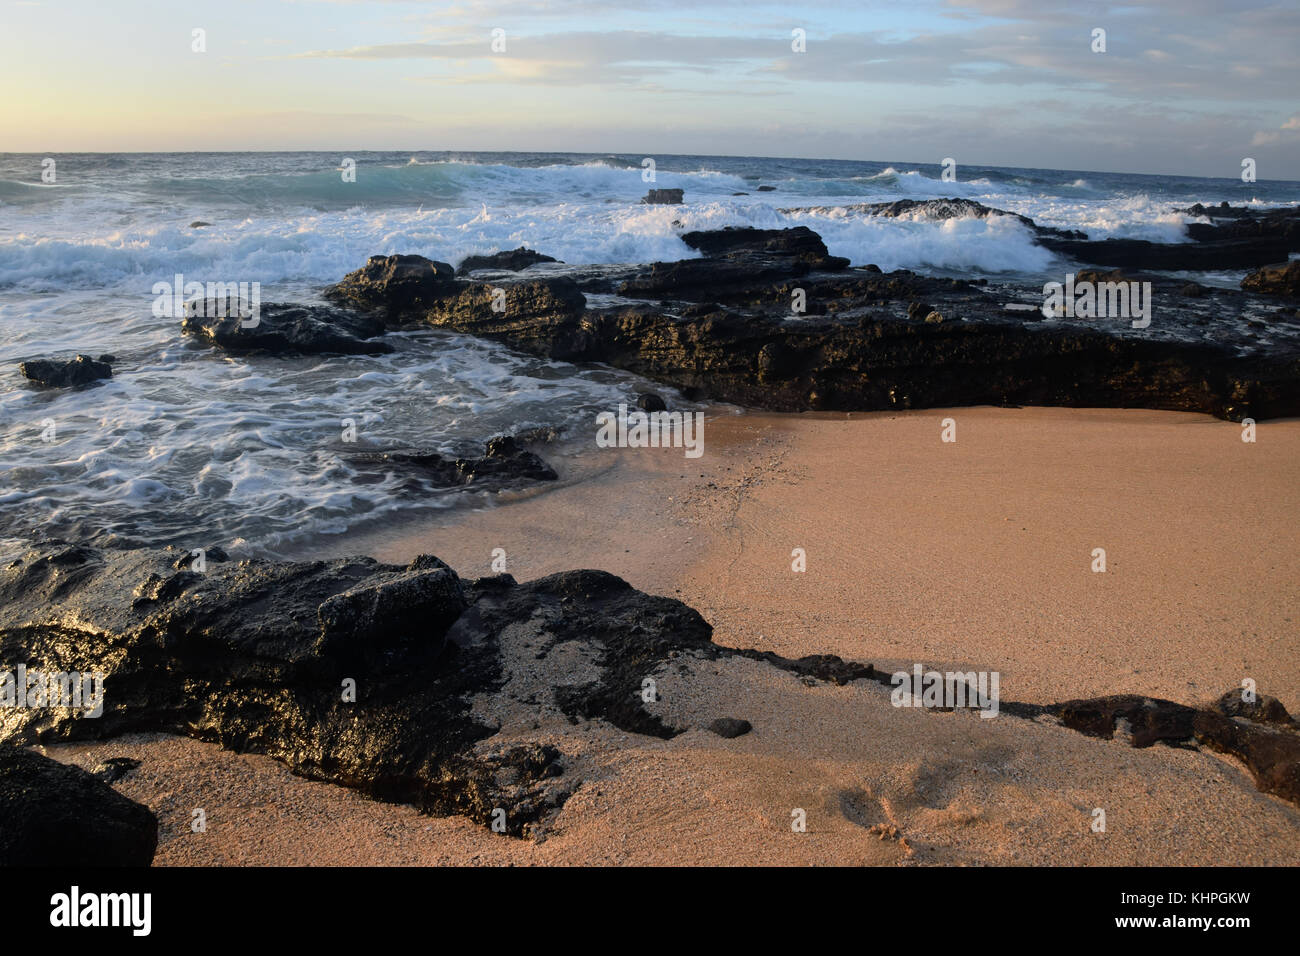 Sunrise over Sandy Beach - Oahu, Hawaii - Stock Image